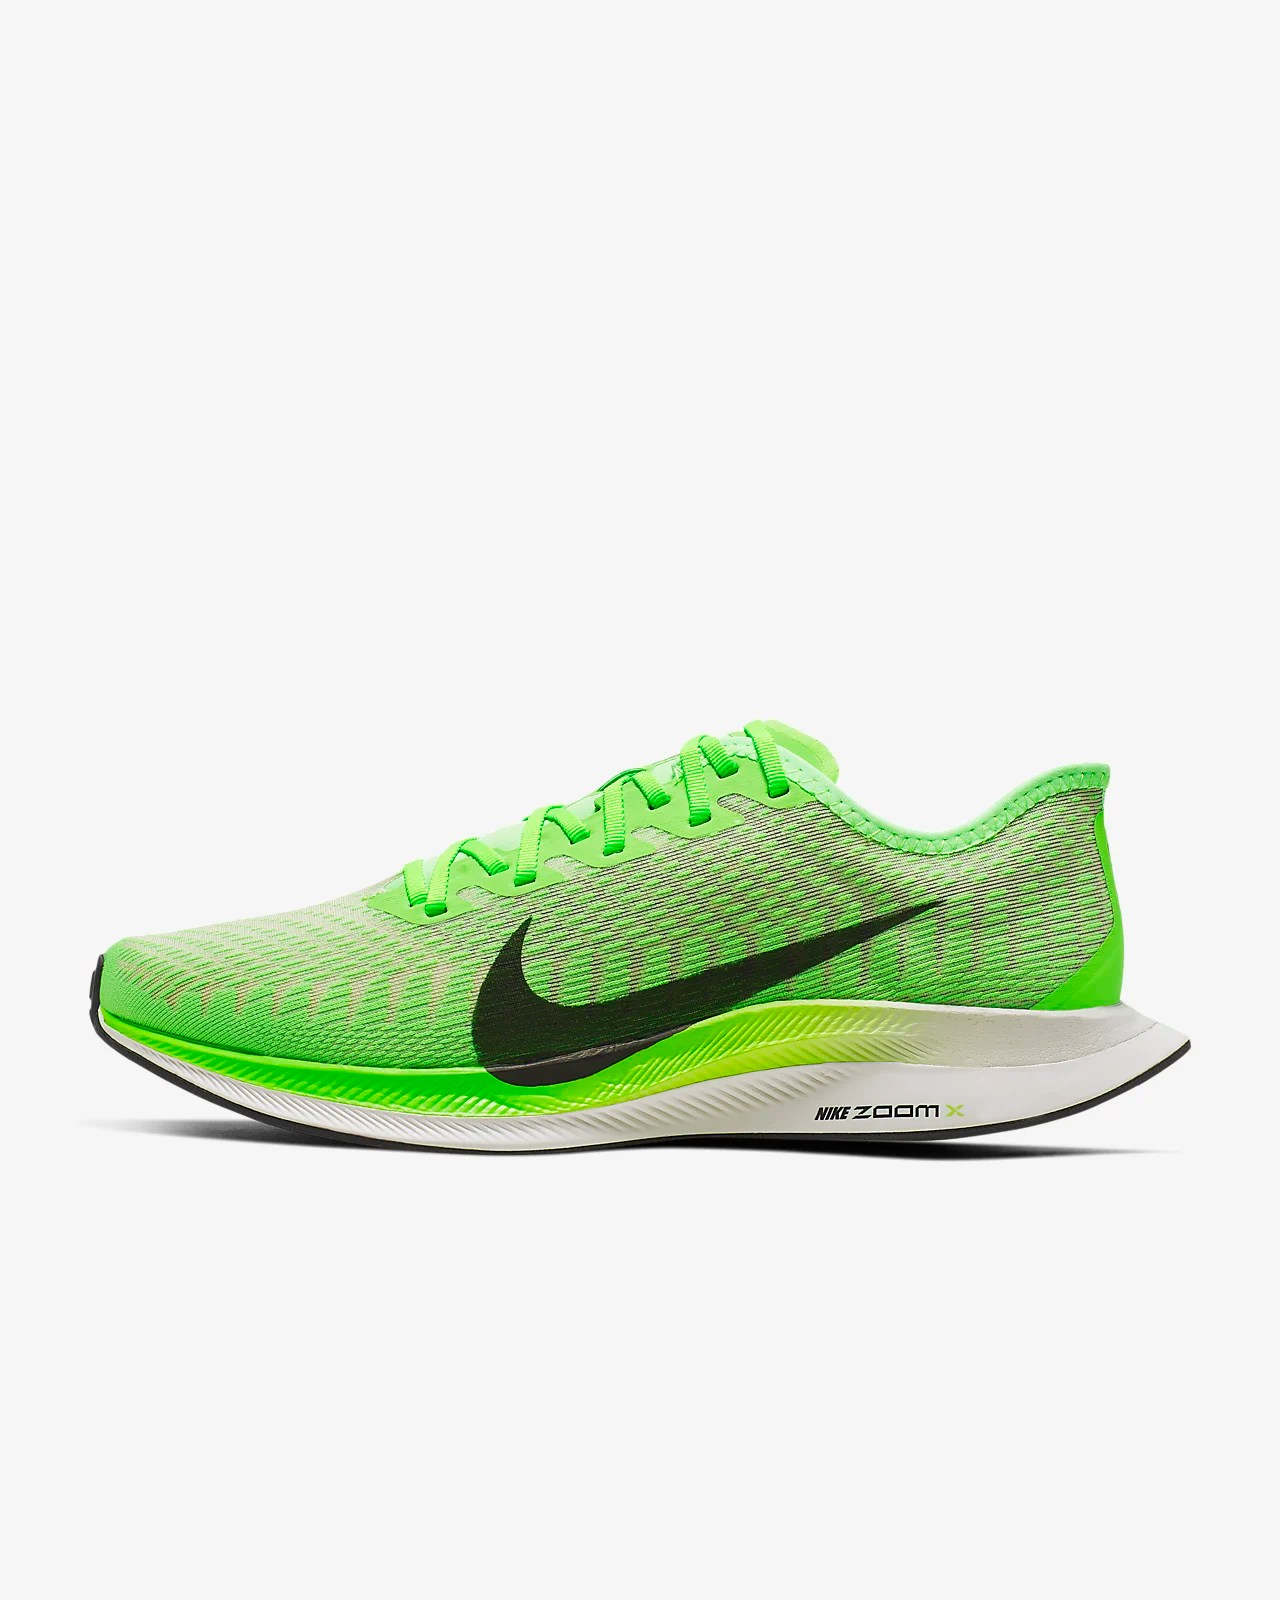 Nike Zoom Grey And Green Nike Zoom Pegasus Turbo 2 Men S Running Shoe